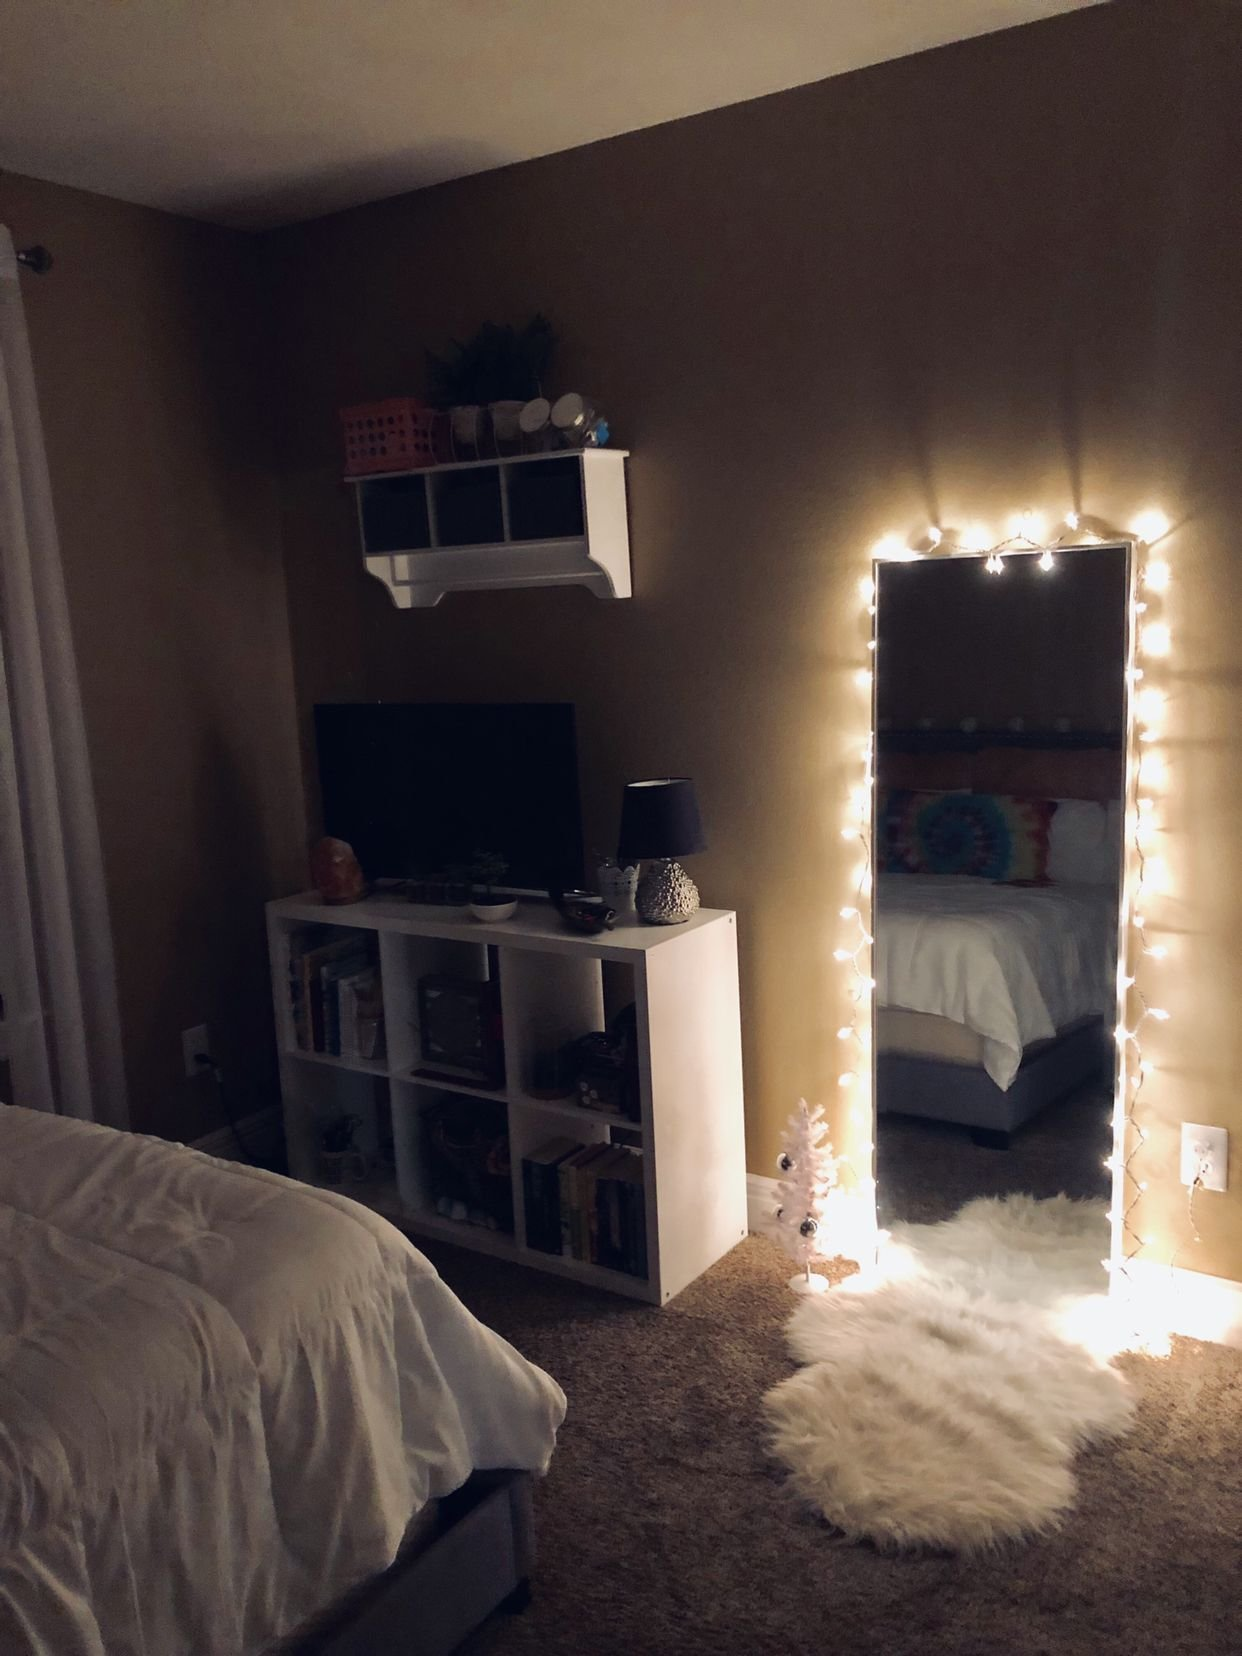 Best Good Idea To Make It As A Night Light My Future Room In With Pictures